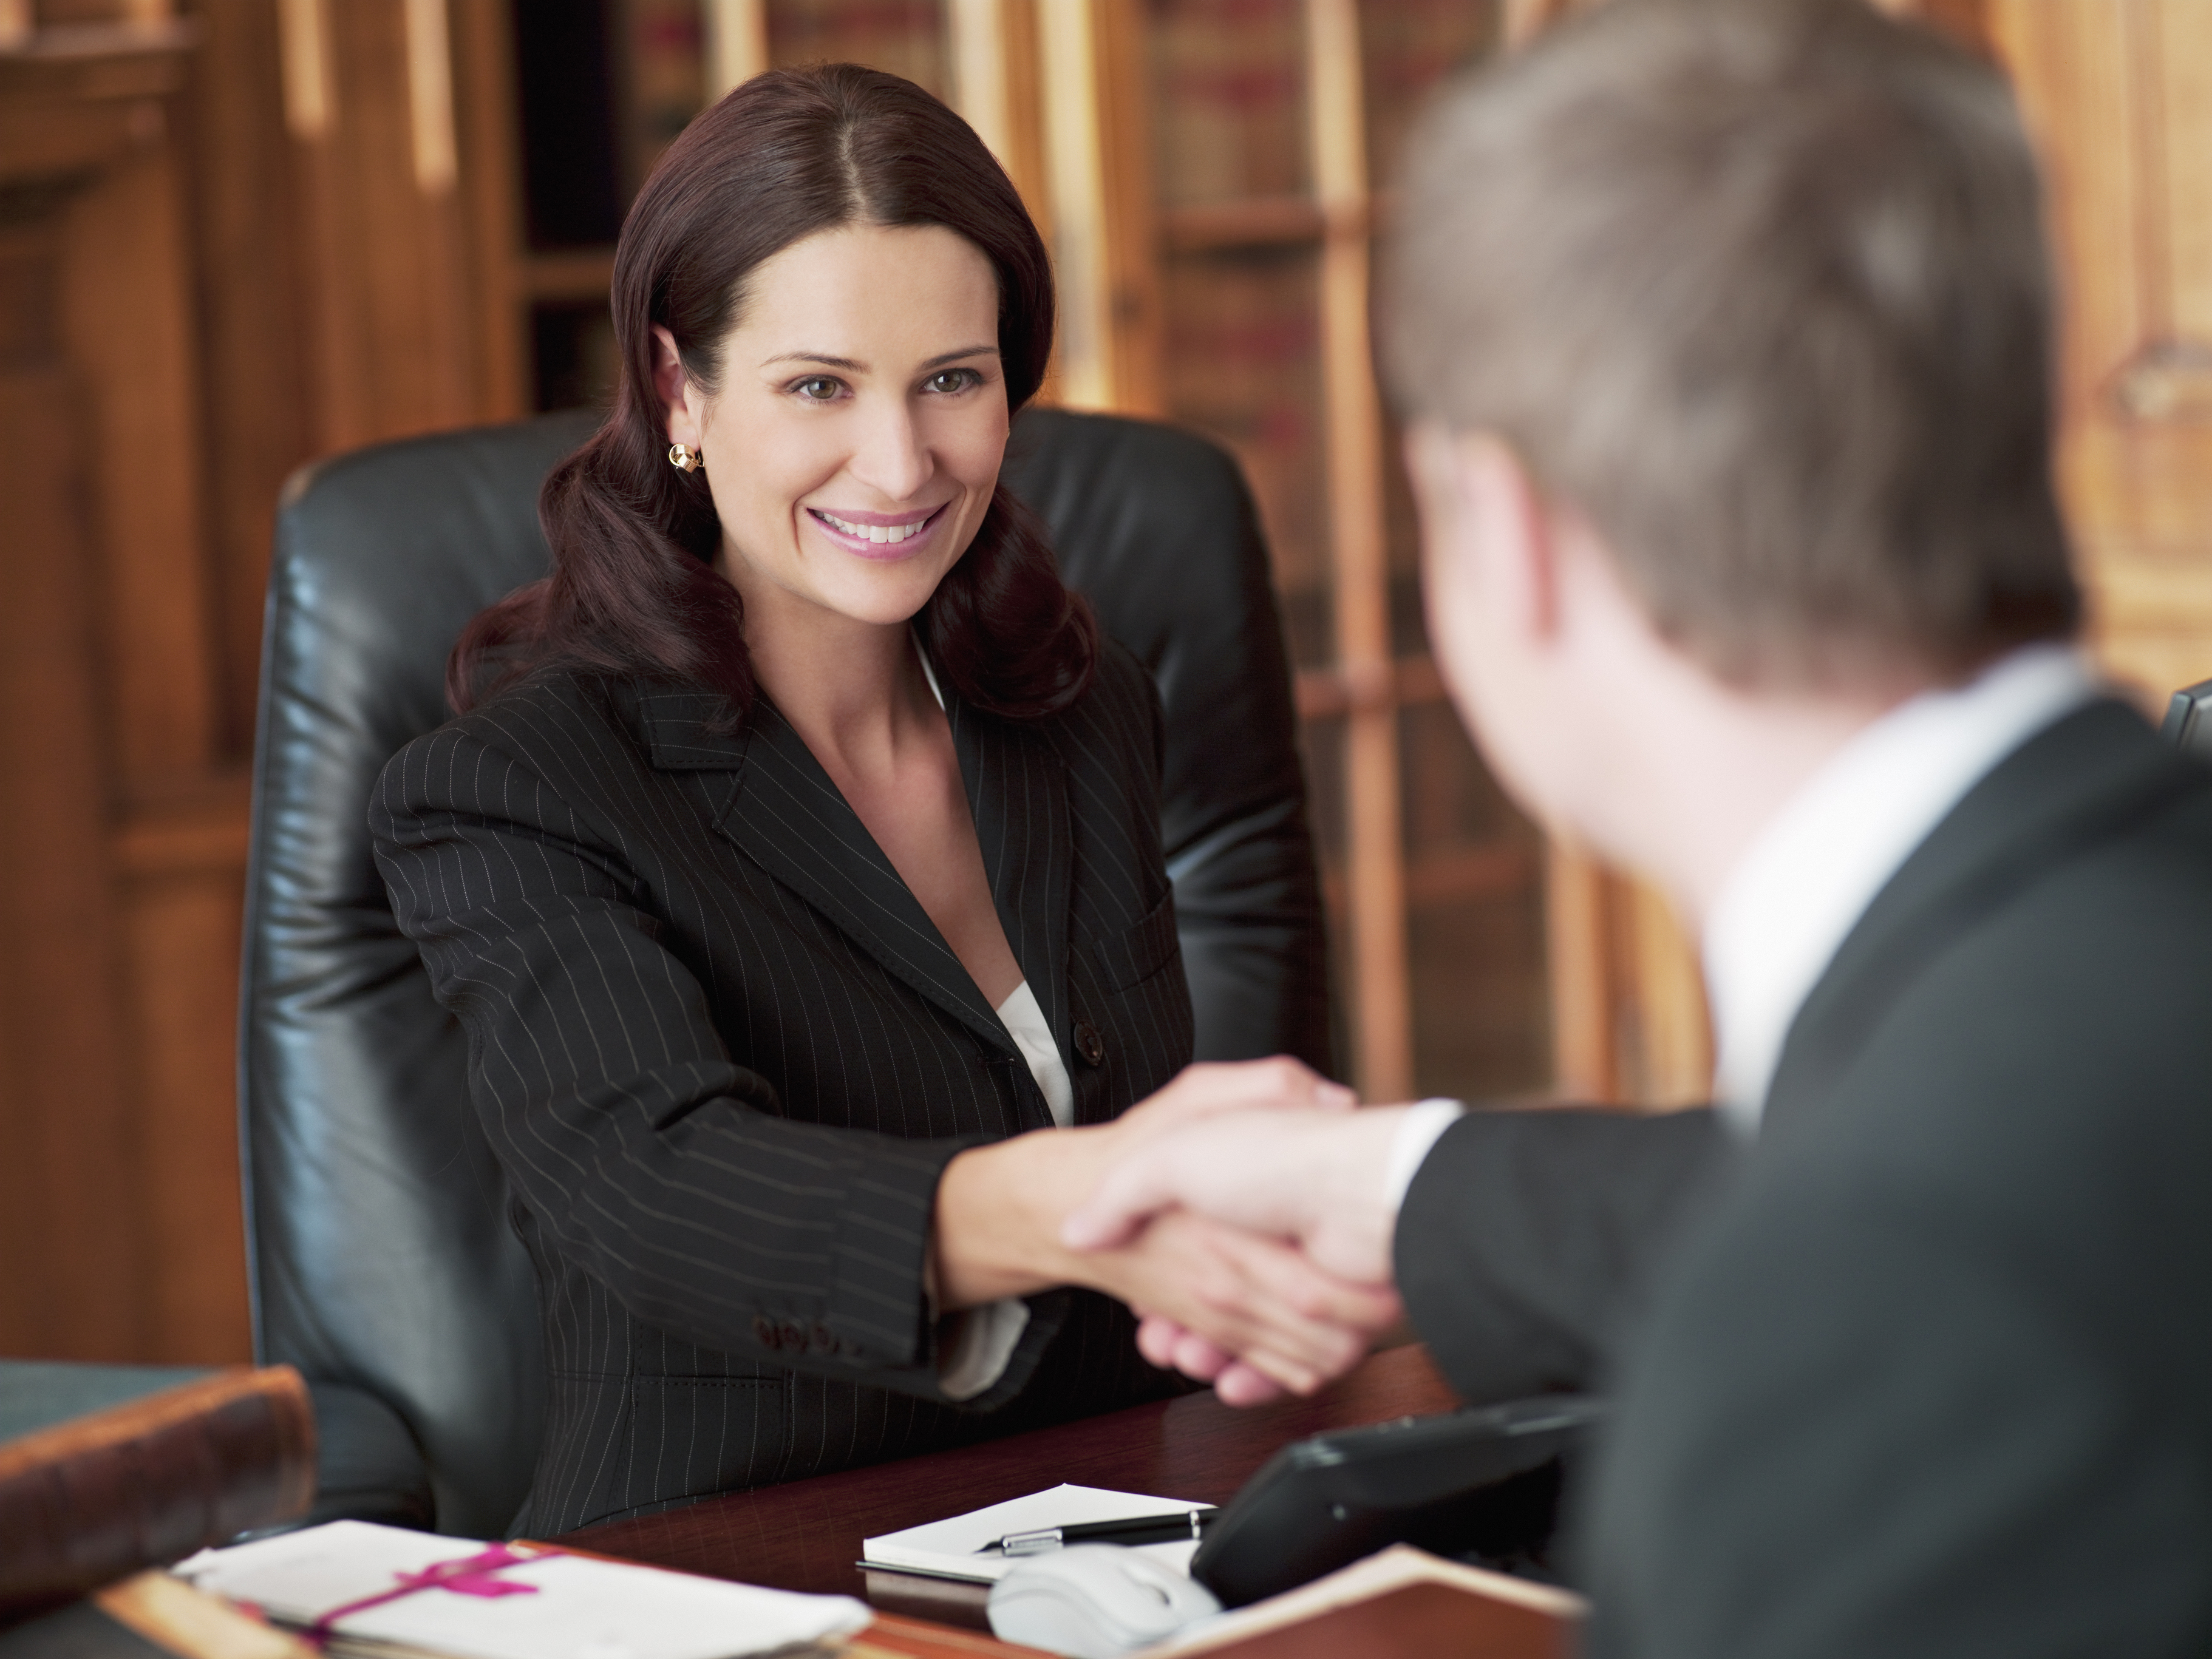 Smiling female lawyer shakes hands in office